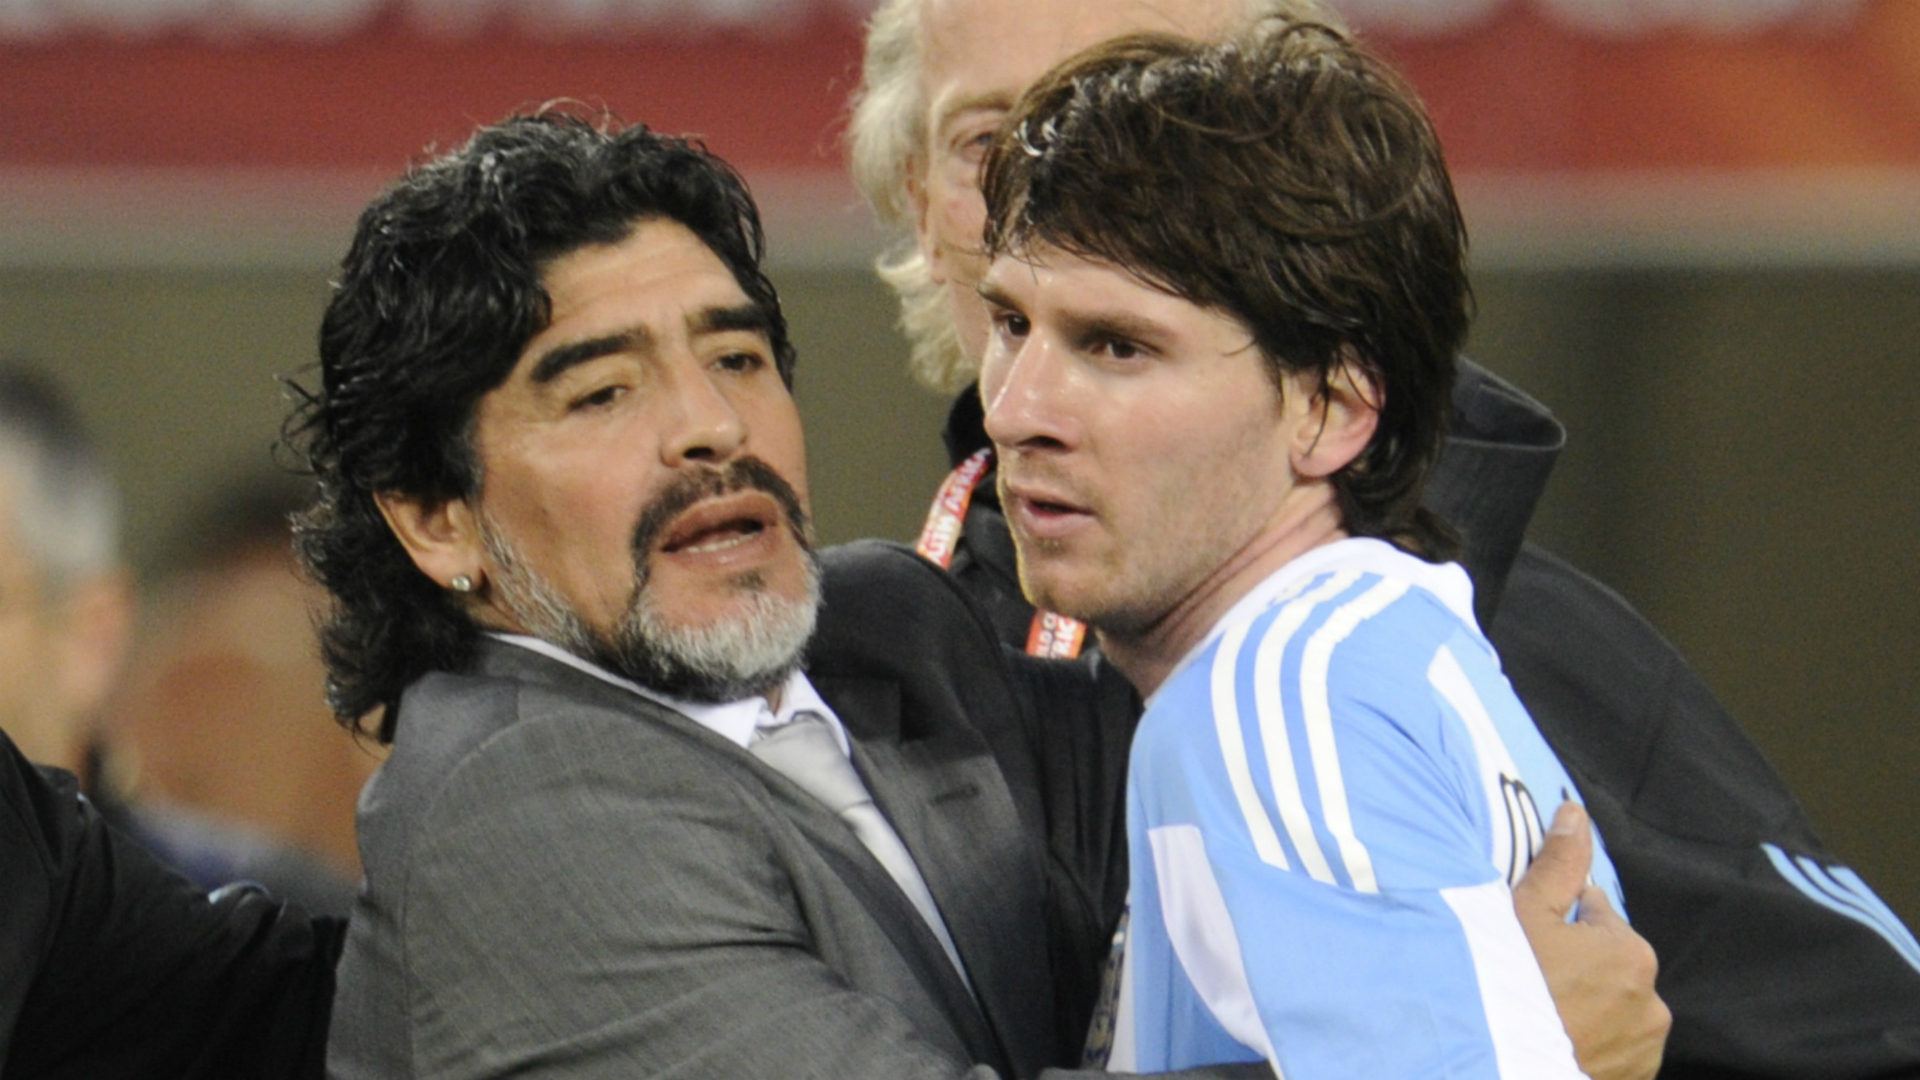 Maradona at 60: Legend Diego and Lionel Messi are best we've seen, says Barcelona boss Koeman